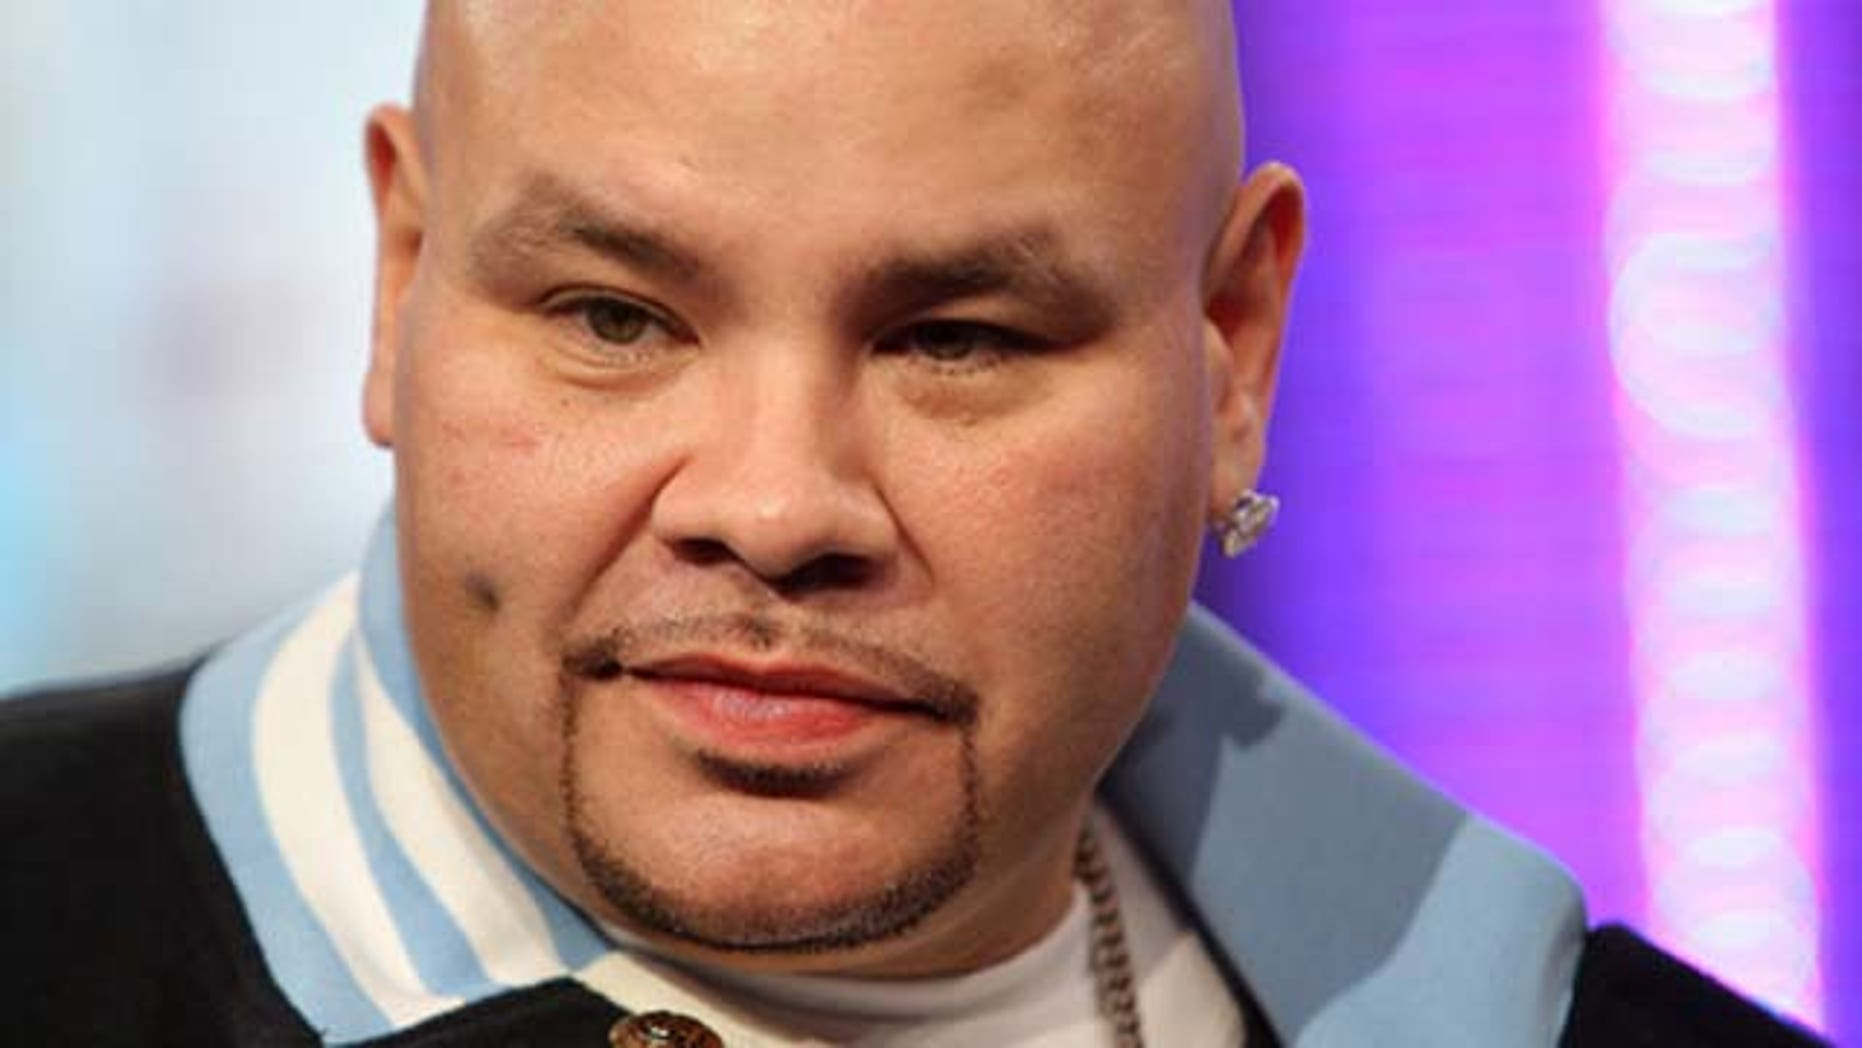 March 11, 2008: Rapper Fat Joe appears onstage during MTV's Total Request Live at the MTV Times Square Studios in New York City.